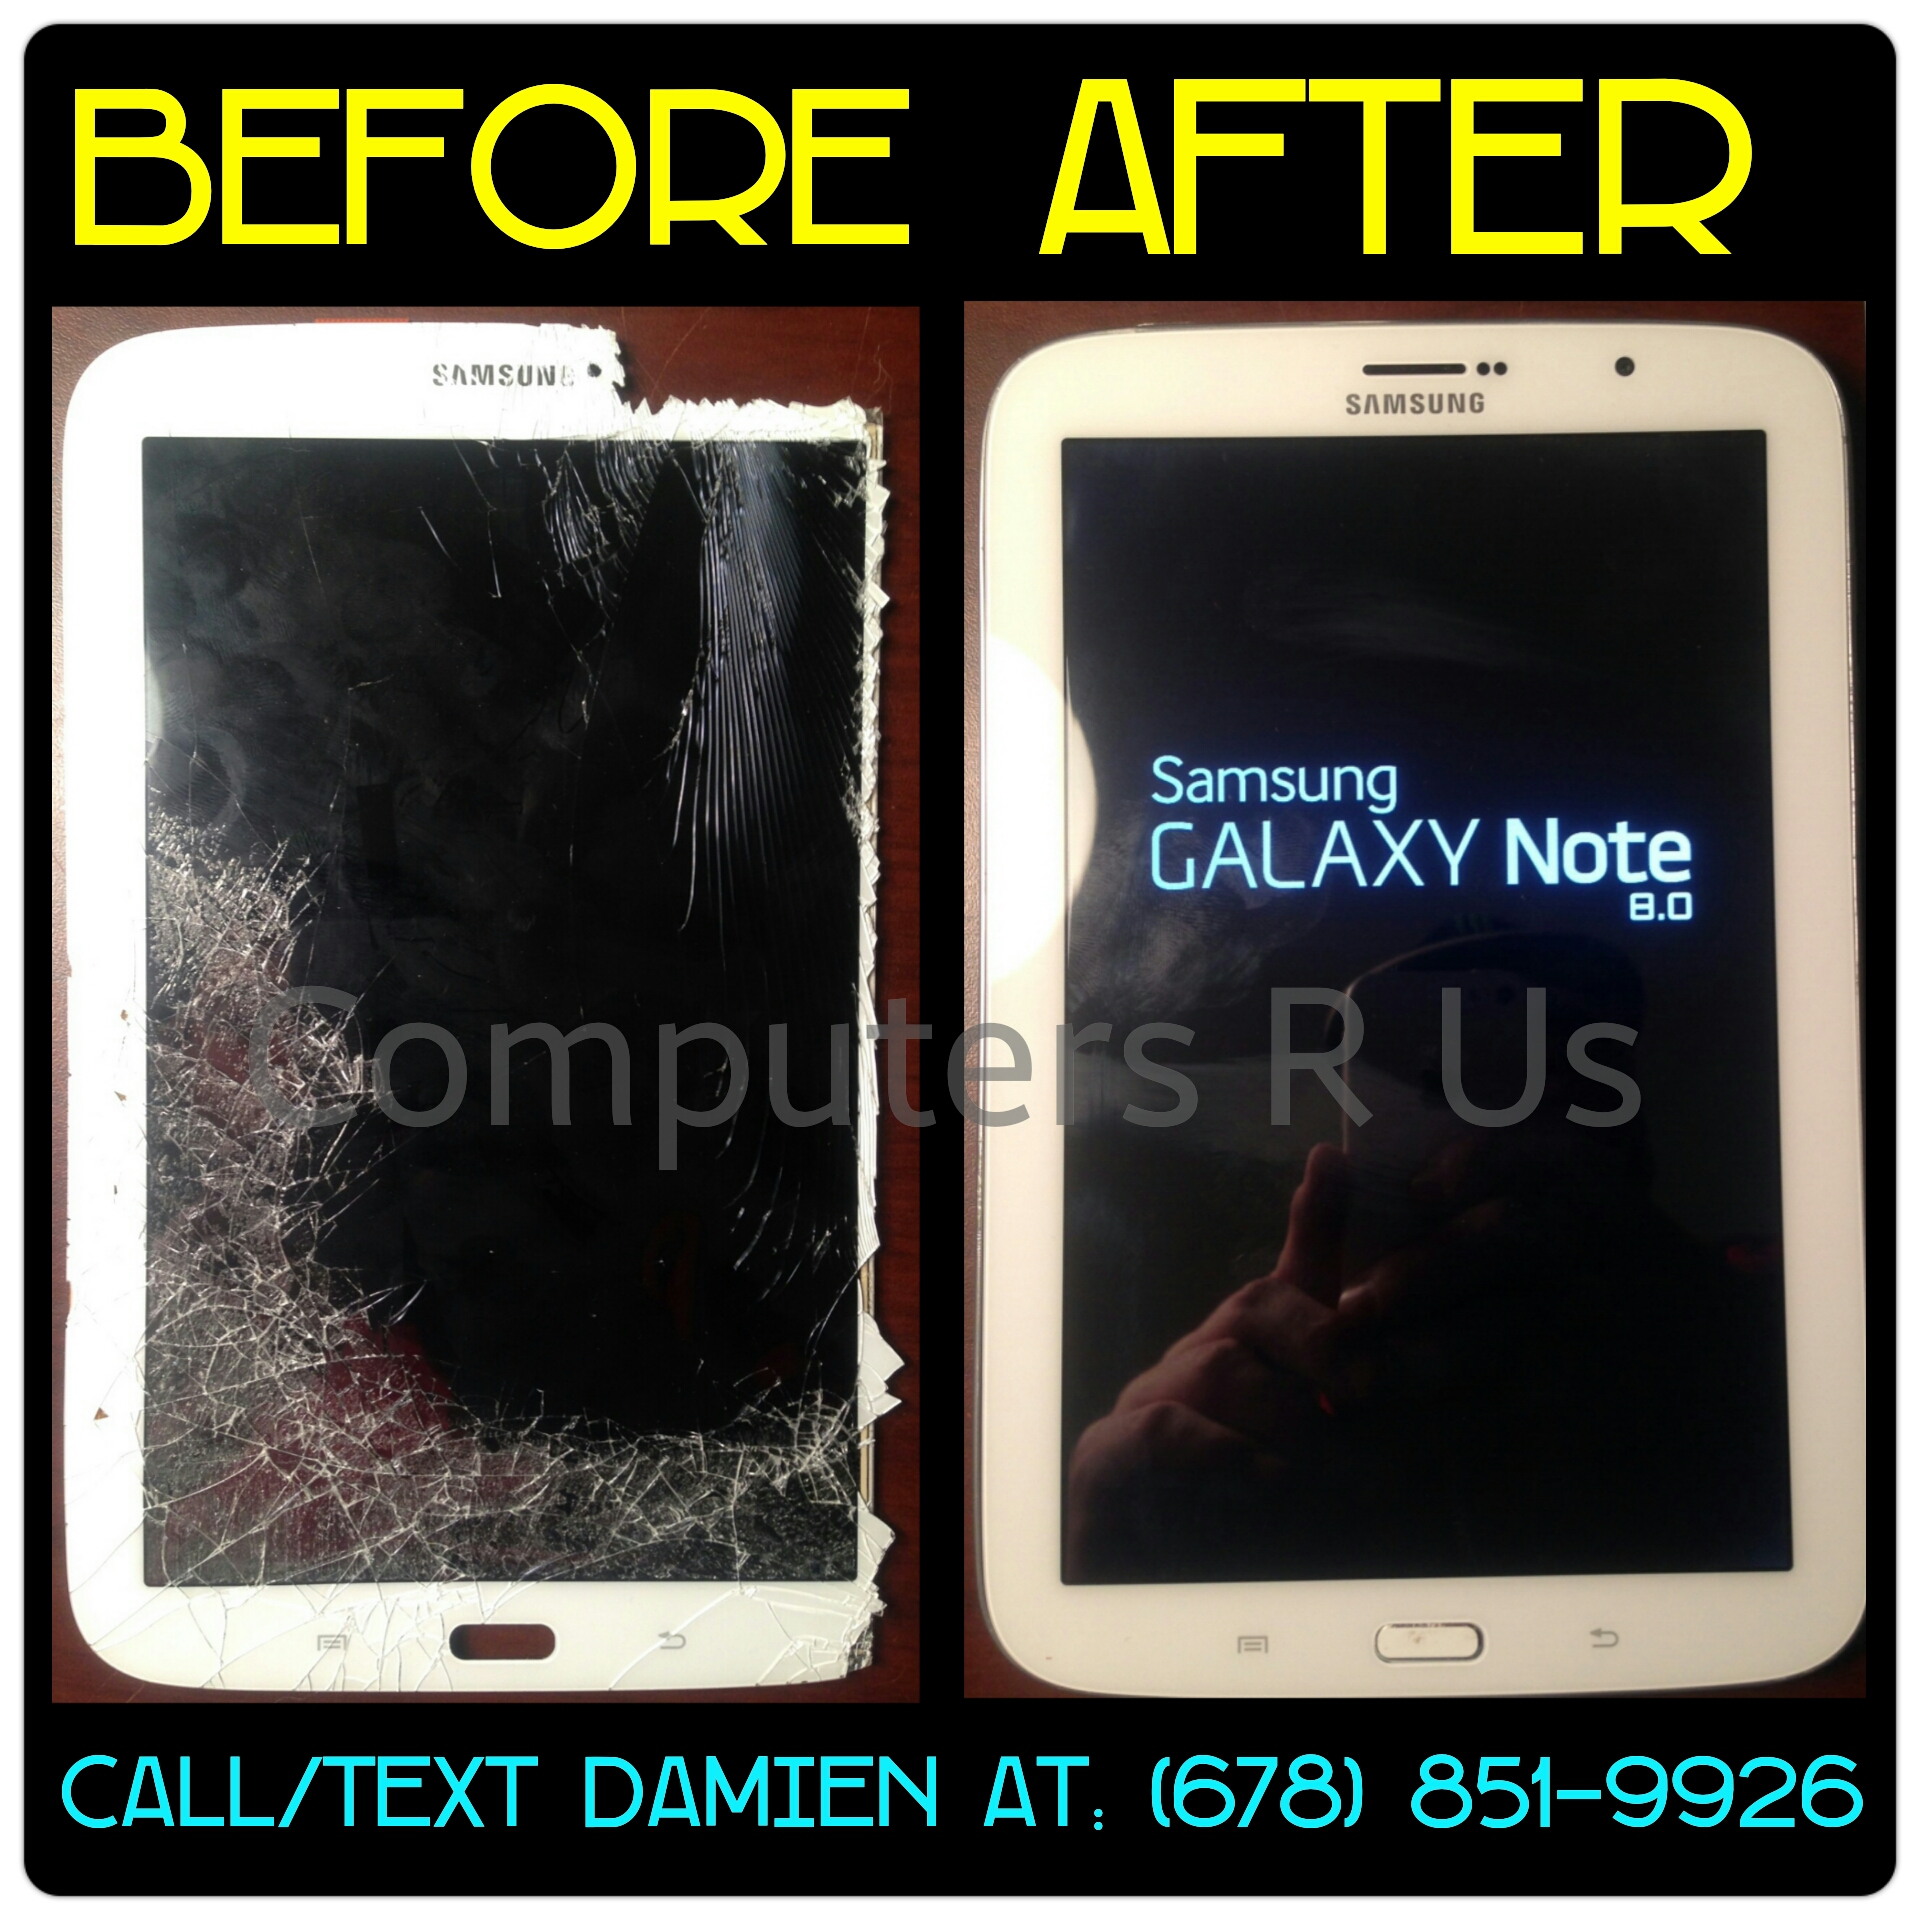 Samsung Note 8.0 Glass Replaced - Before/After